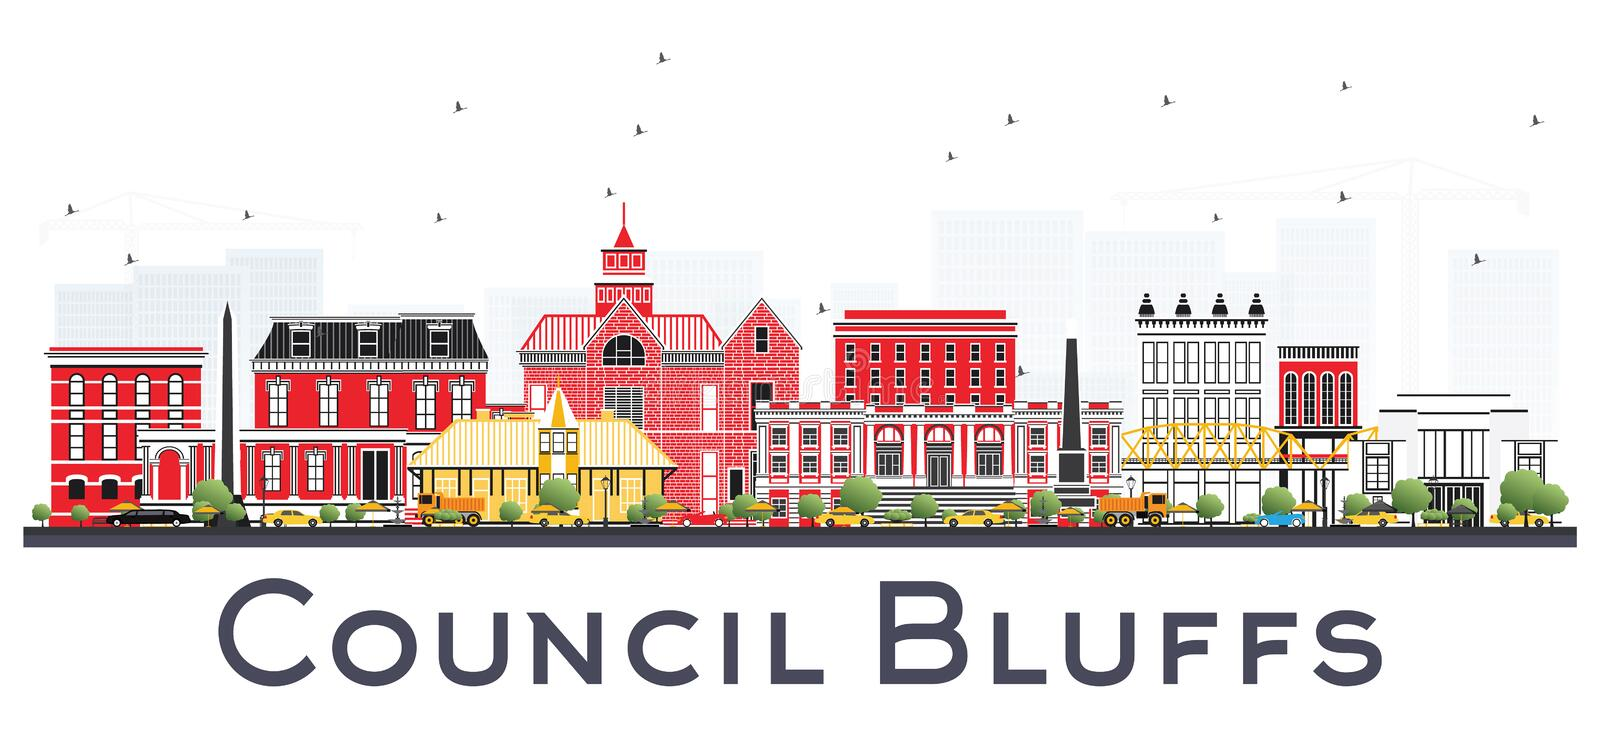 Council Bluffs Iowa Skyline with Color Buildings Isolated on White Background. Vector Illustration. Business Travel and Tourism Illustration with Historic royalty free illustration